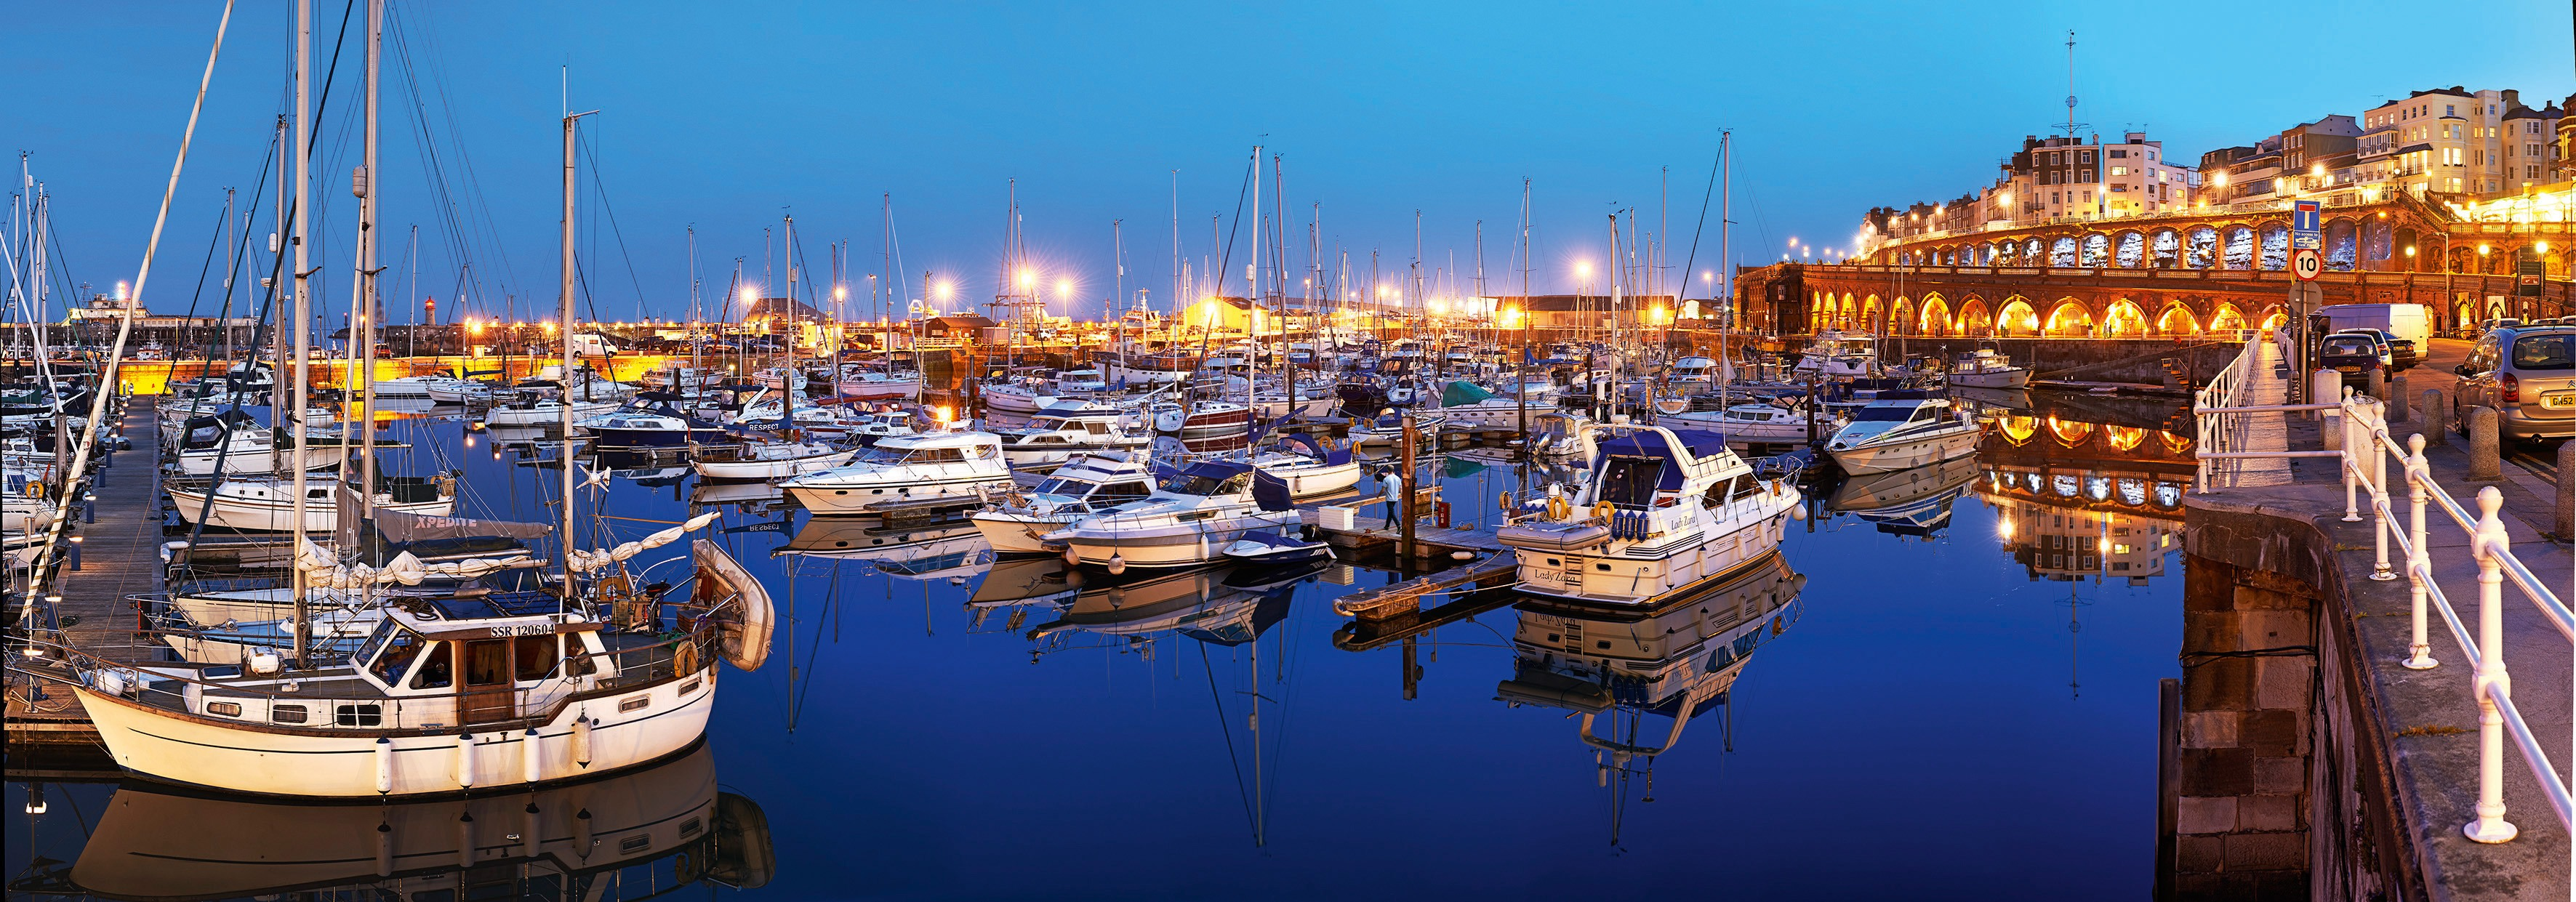 Ramsgate Harbour at night. Visit Kent/Thanet Tourism